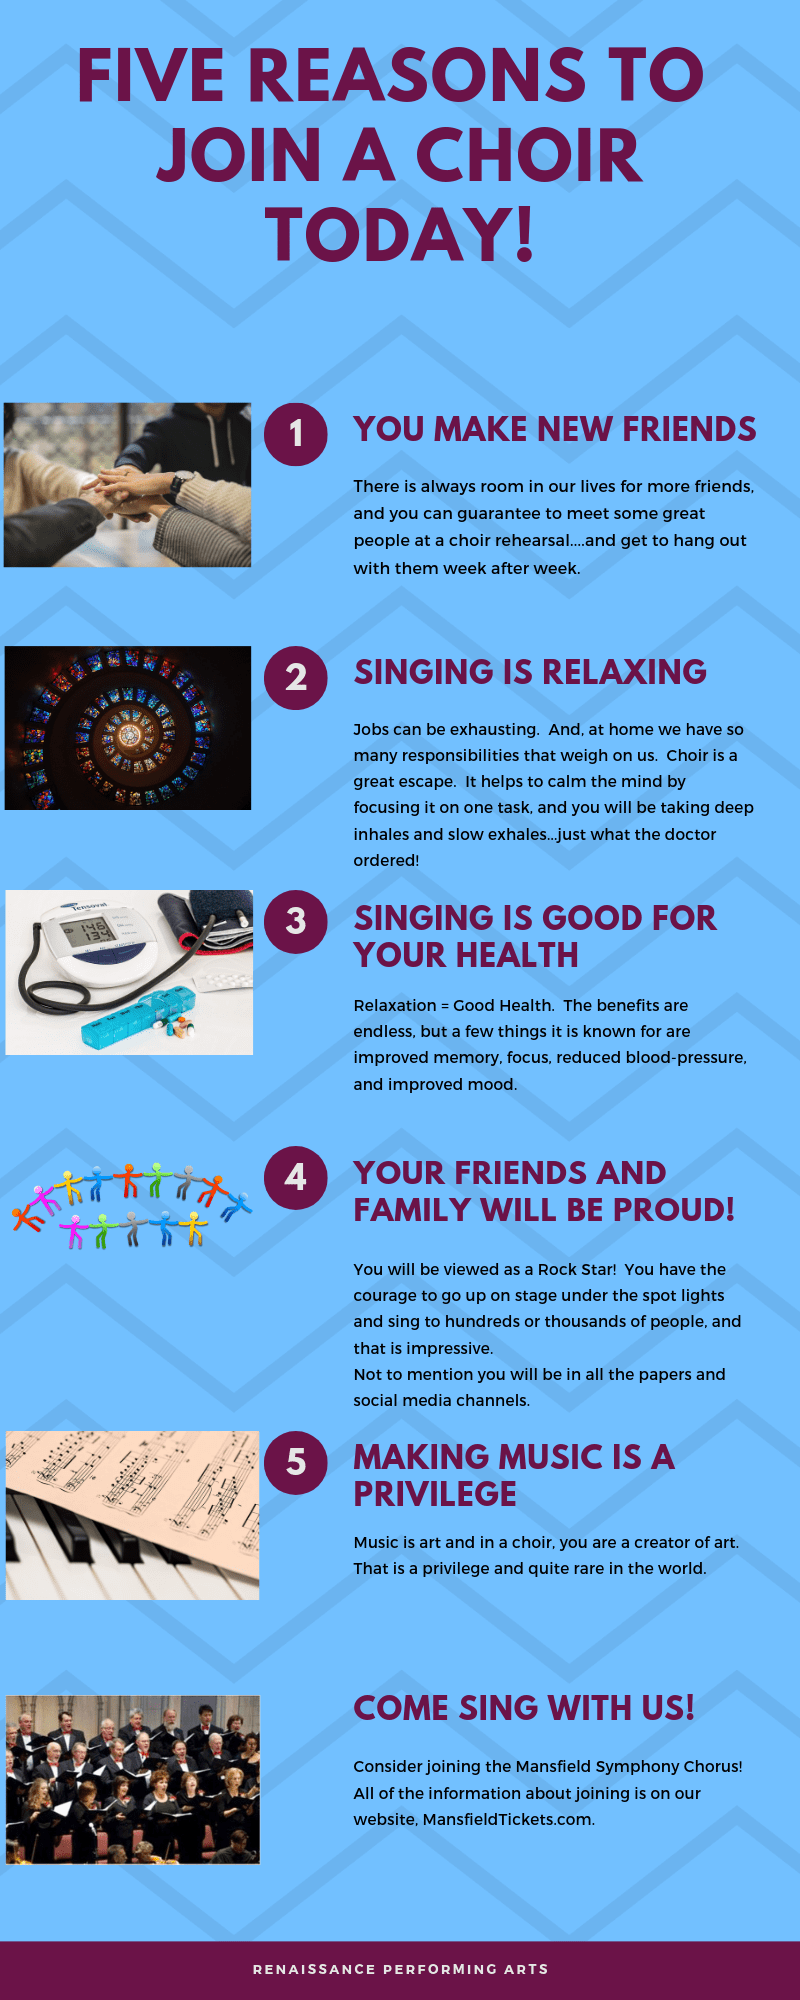 FIVE REASONS TO JOIN A CHOIR TODAY!